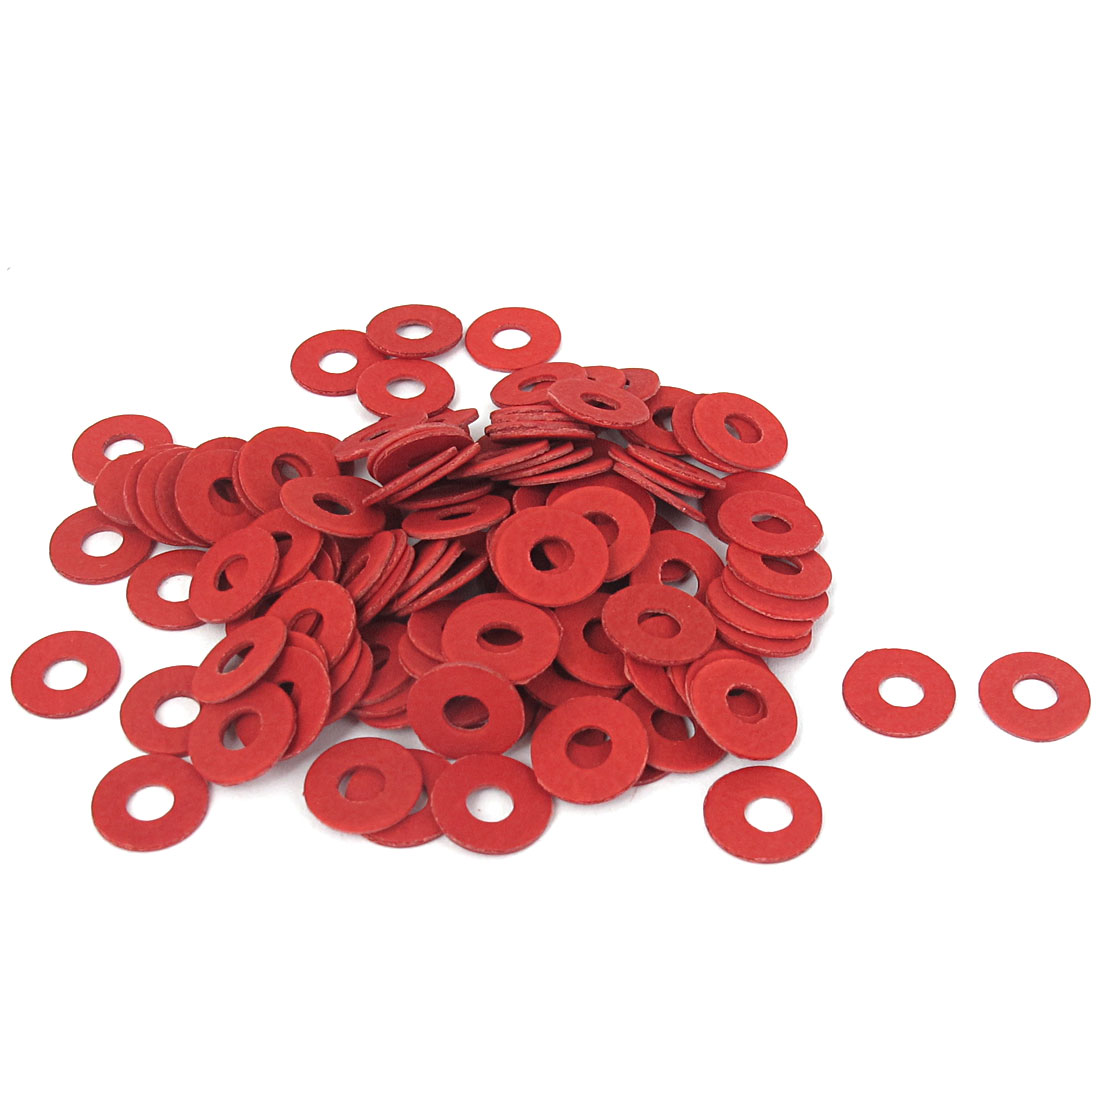 4mmx10mmx0.8mm Fiber Motherboard Insulating Gasket Flat Washer Red 100pcs